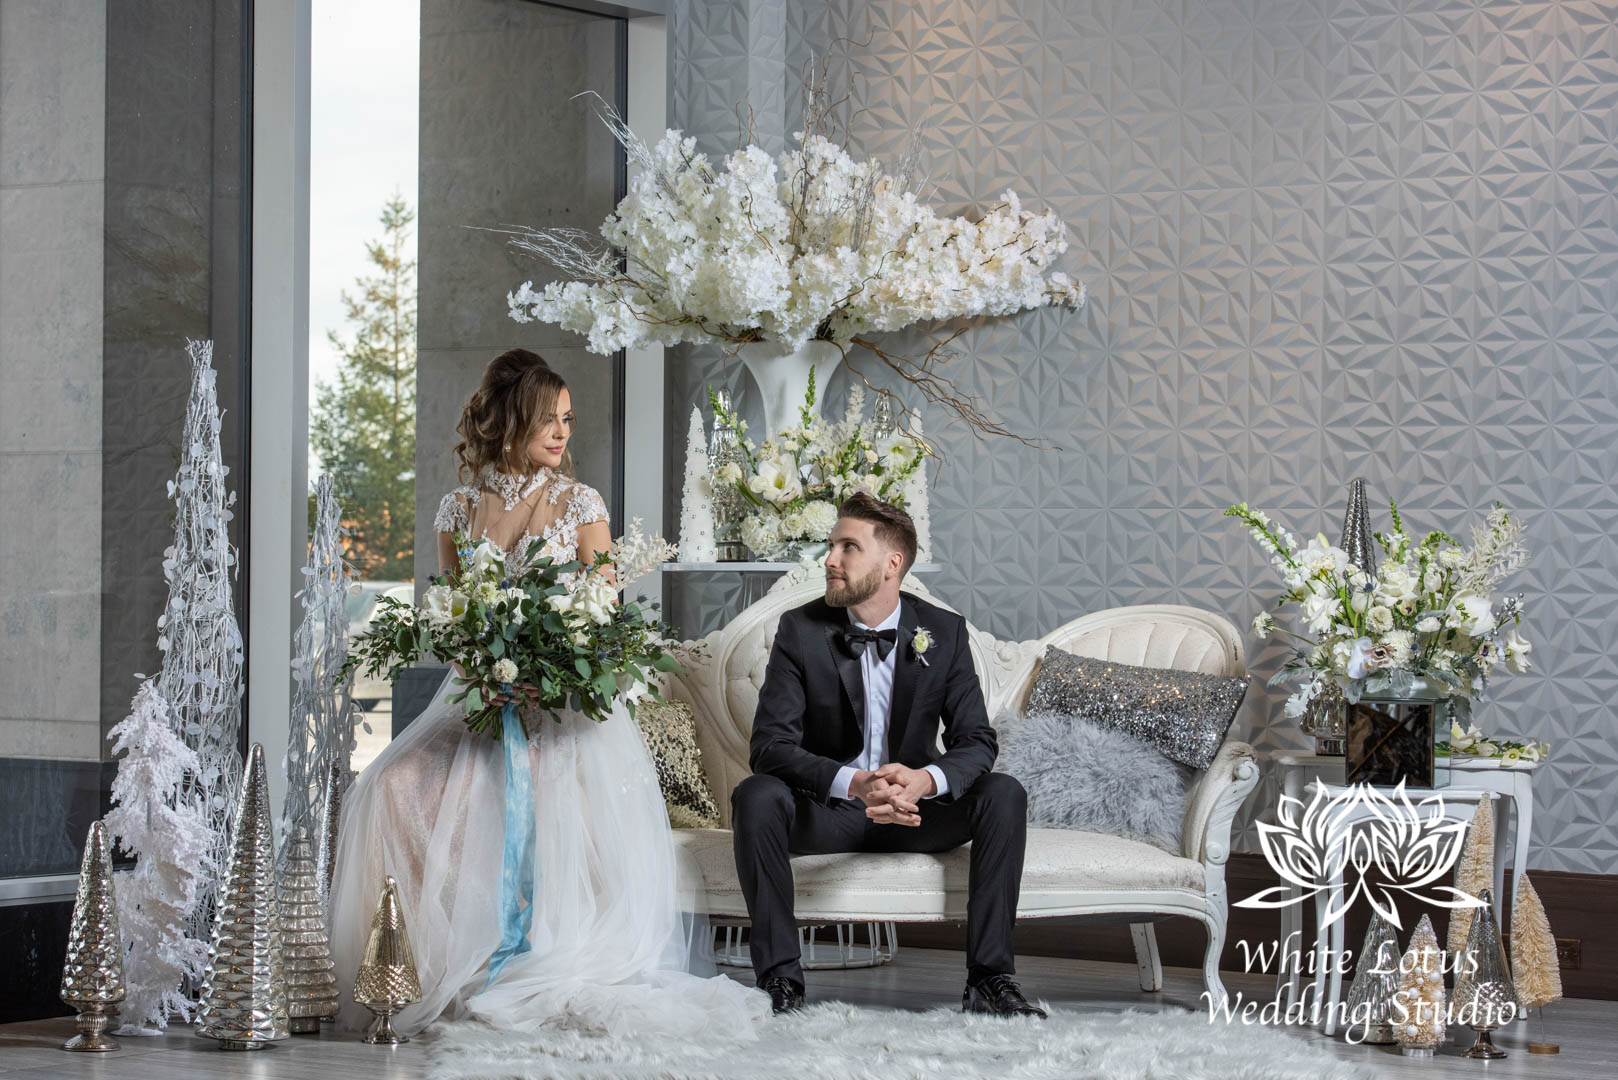 073- GLAM WINTERLUXE WEDDING INSPIRATION